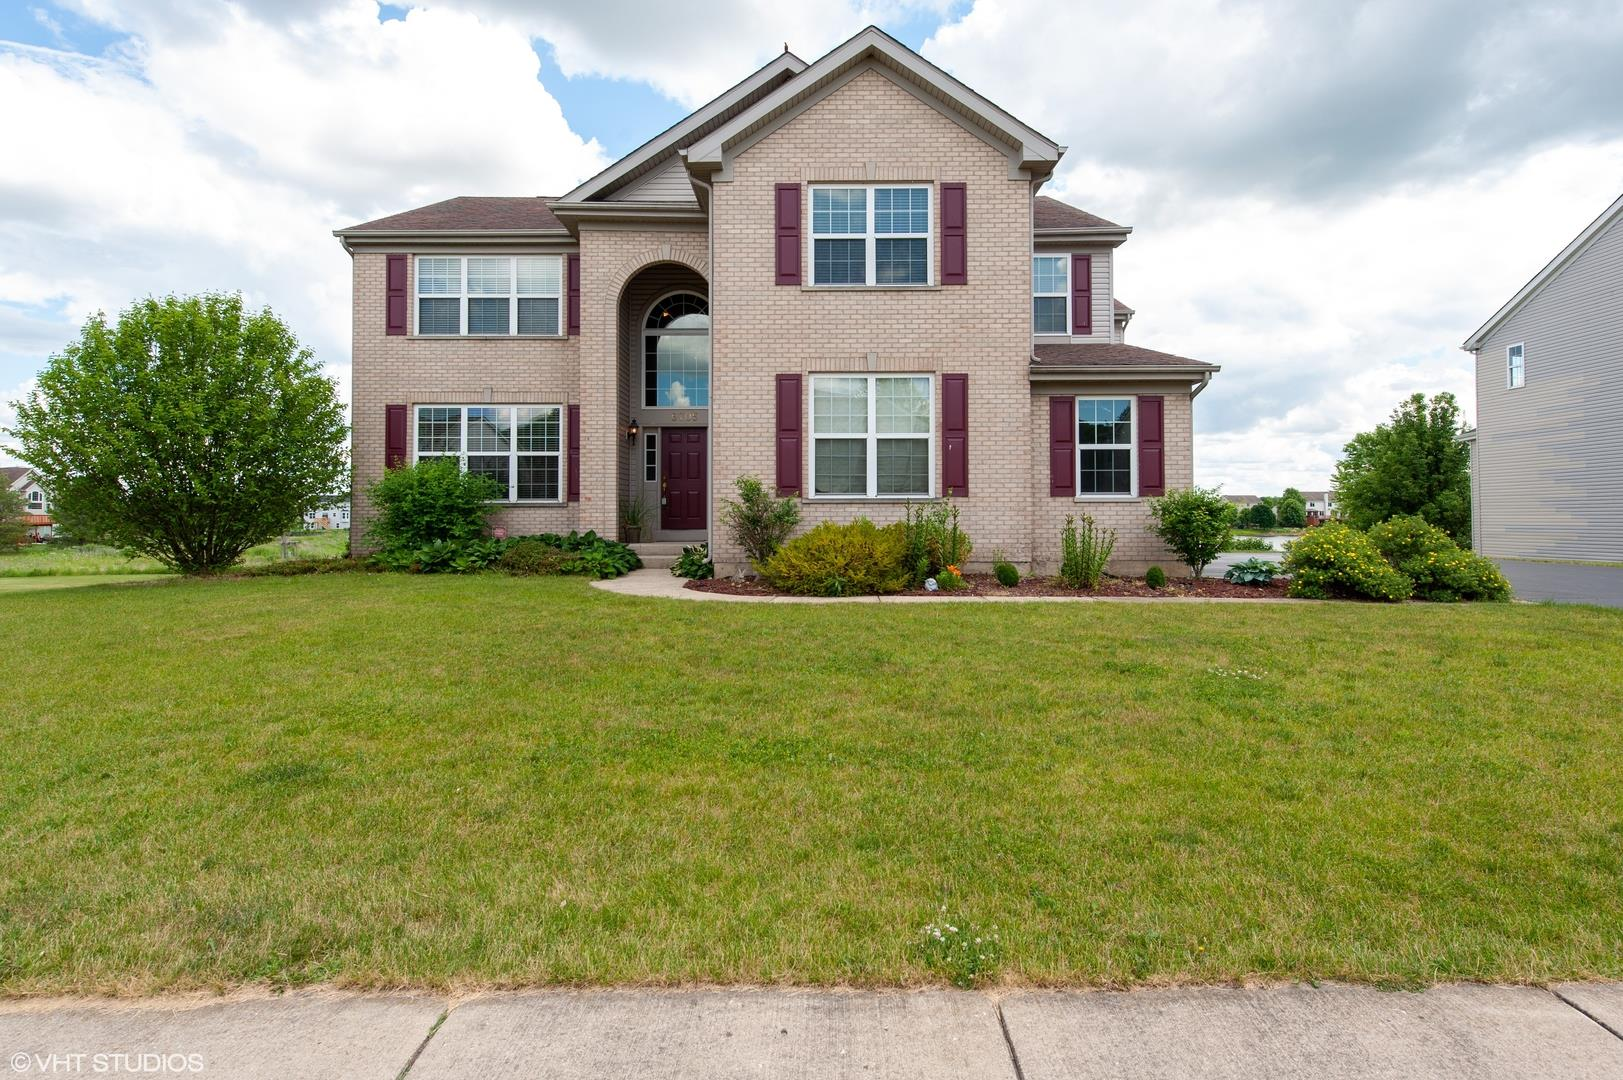 6705 Waterford Drive, McHenry, IL 60050 - #: 10760837